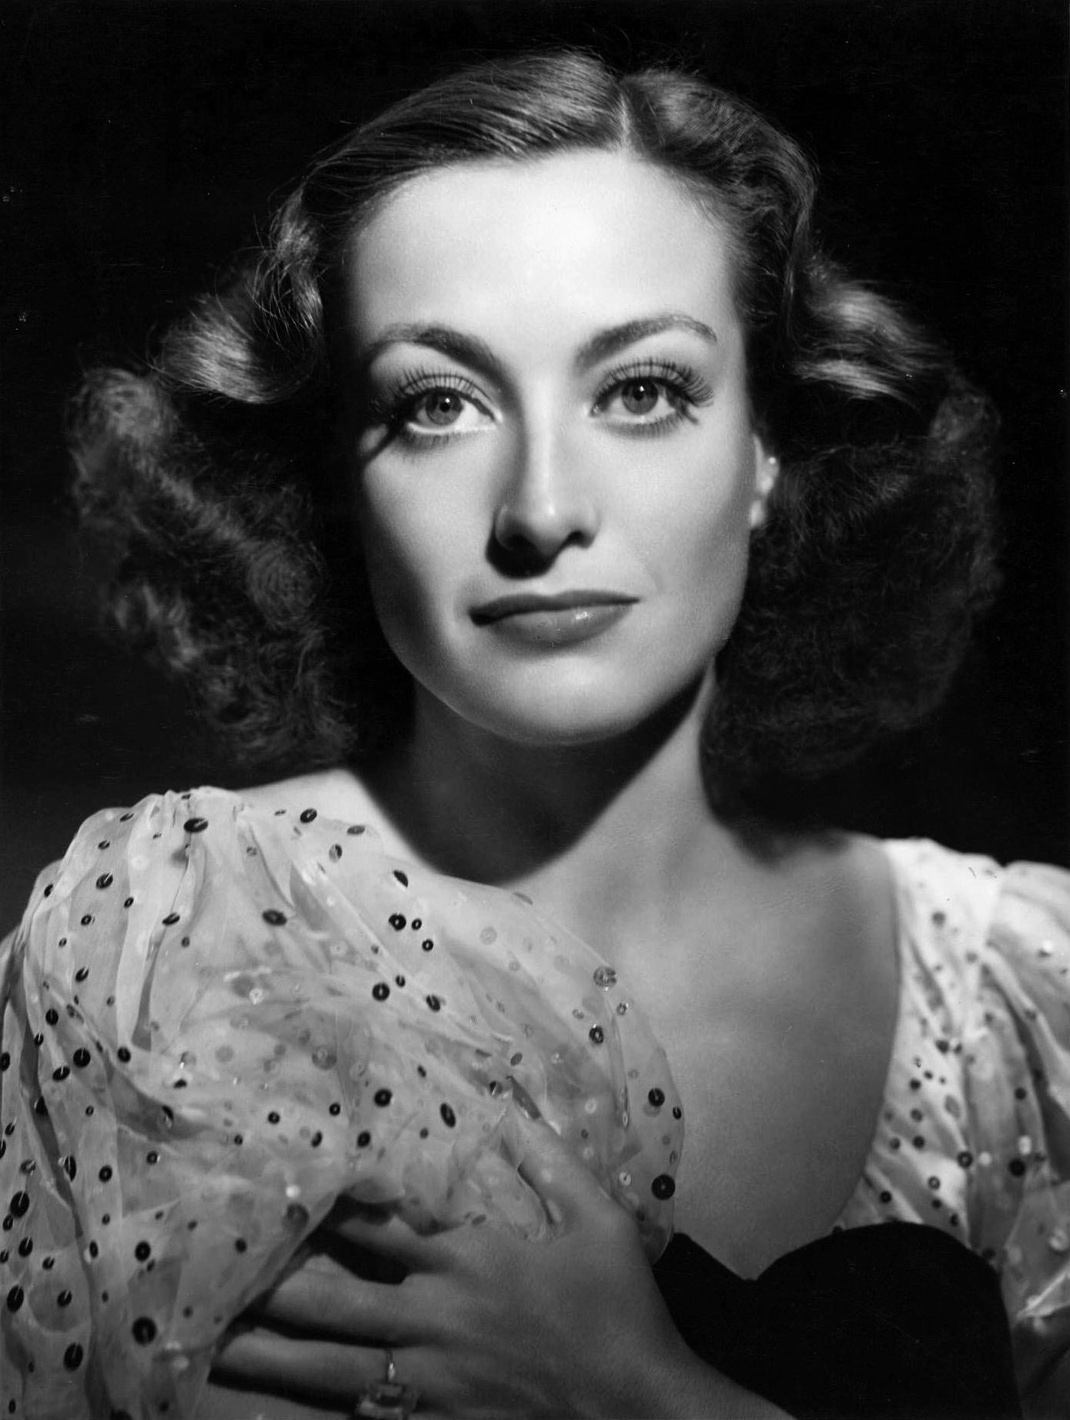 Soothing Rumors Have Always Swirled Around Joan But Now Her Son Issetting Record Straight Rumors Have Always Swirled Around Joan But Now Her Joan Crawford House Palm Springs Joan Crawford House Addres curbed Joan Crawford House